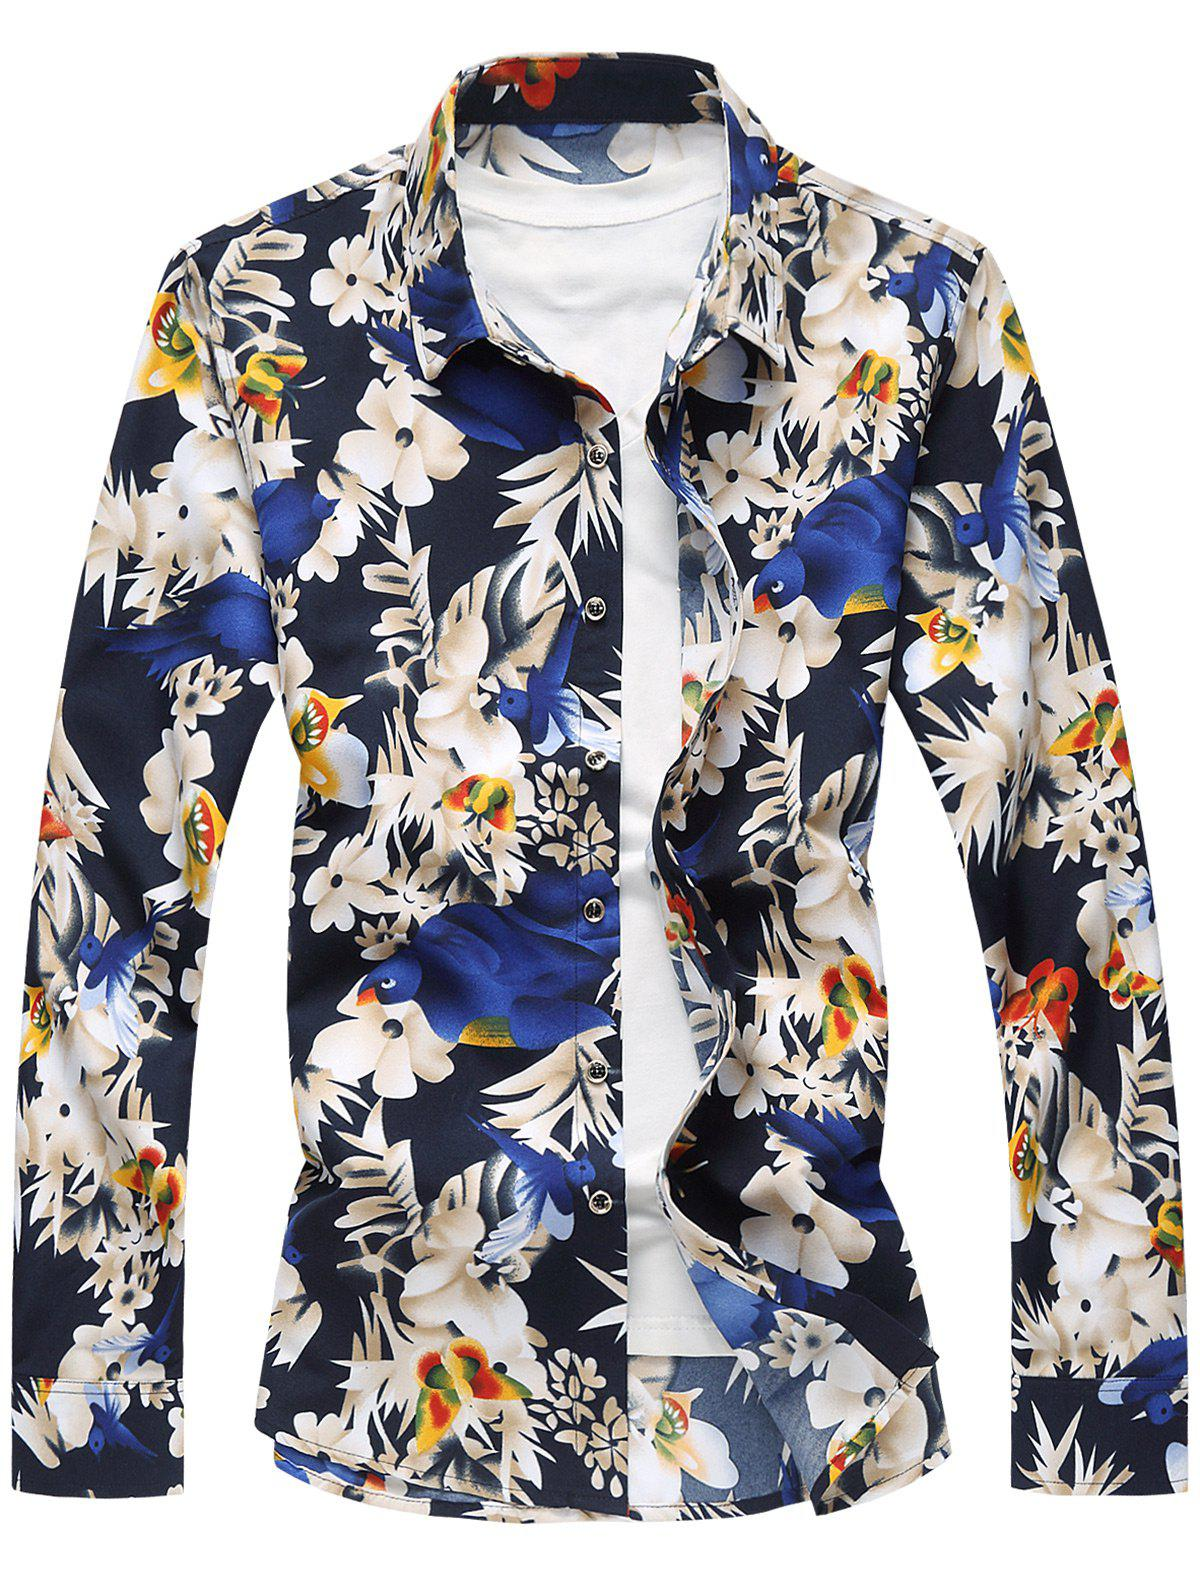 Plus Size Flowers and Birds Print Long Sleeve Shirt - COLORMIX 7XL